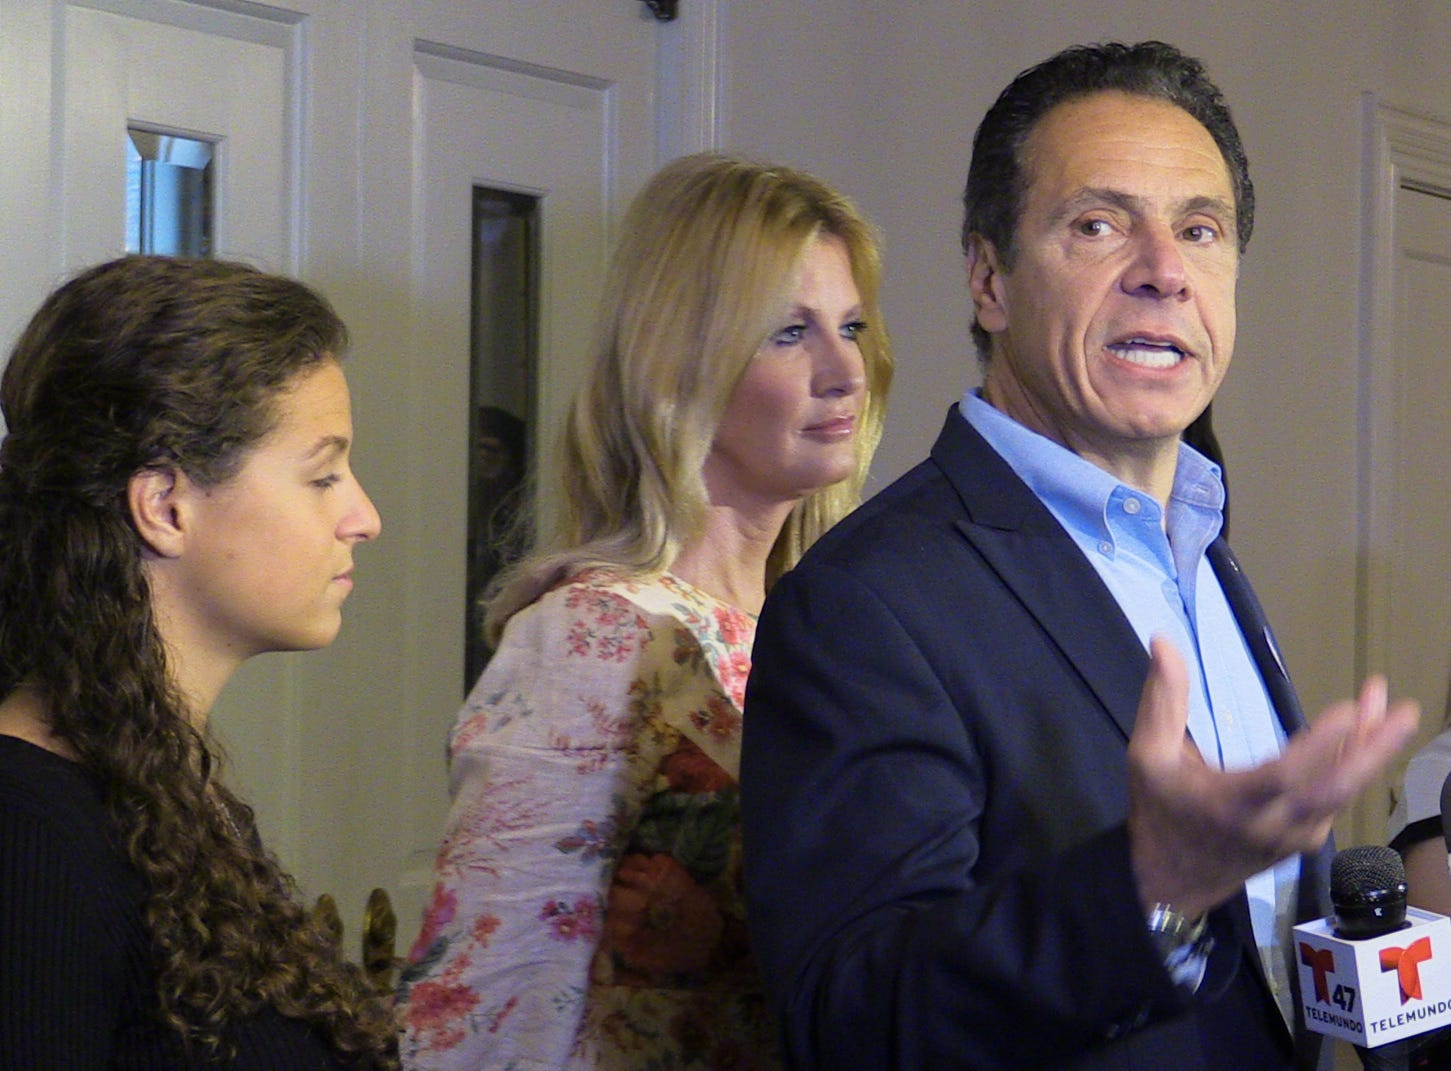 New York Governor Andrew Cuomo speaks to the media after voting at the Presbyterian Church of Mount Kisco, Nov. 6, 2018. With him are at left, daughter Cara Kennedy Cuomo and girlfriend Sandra Lee.